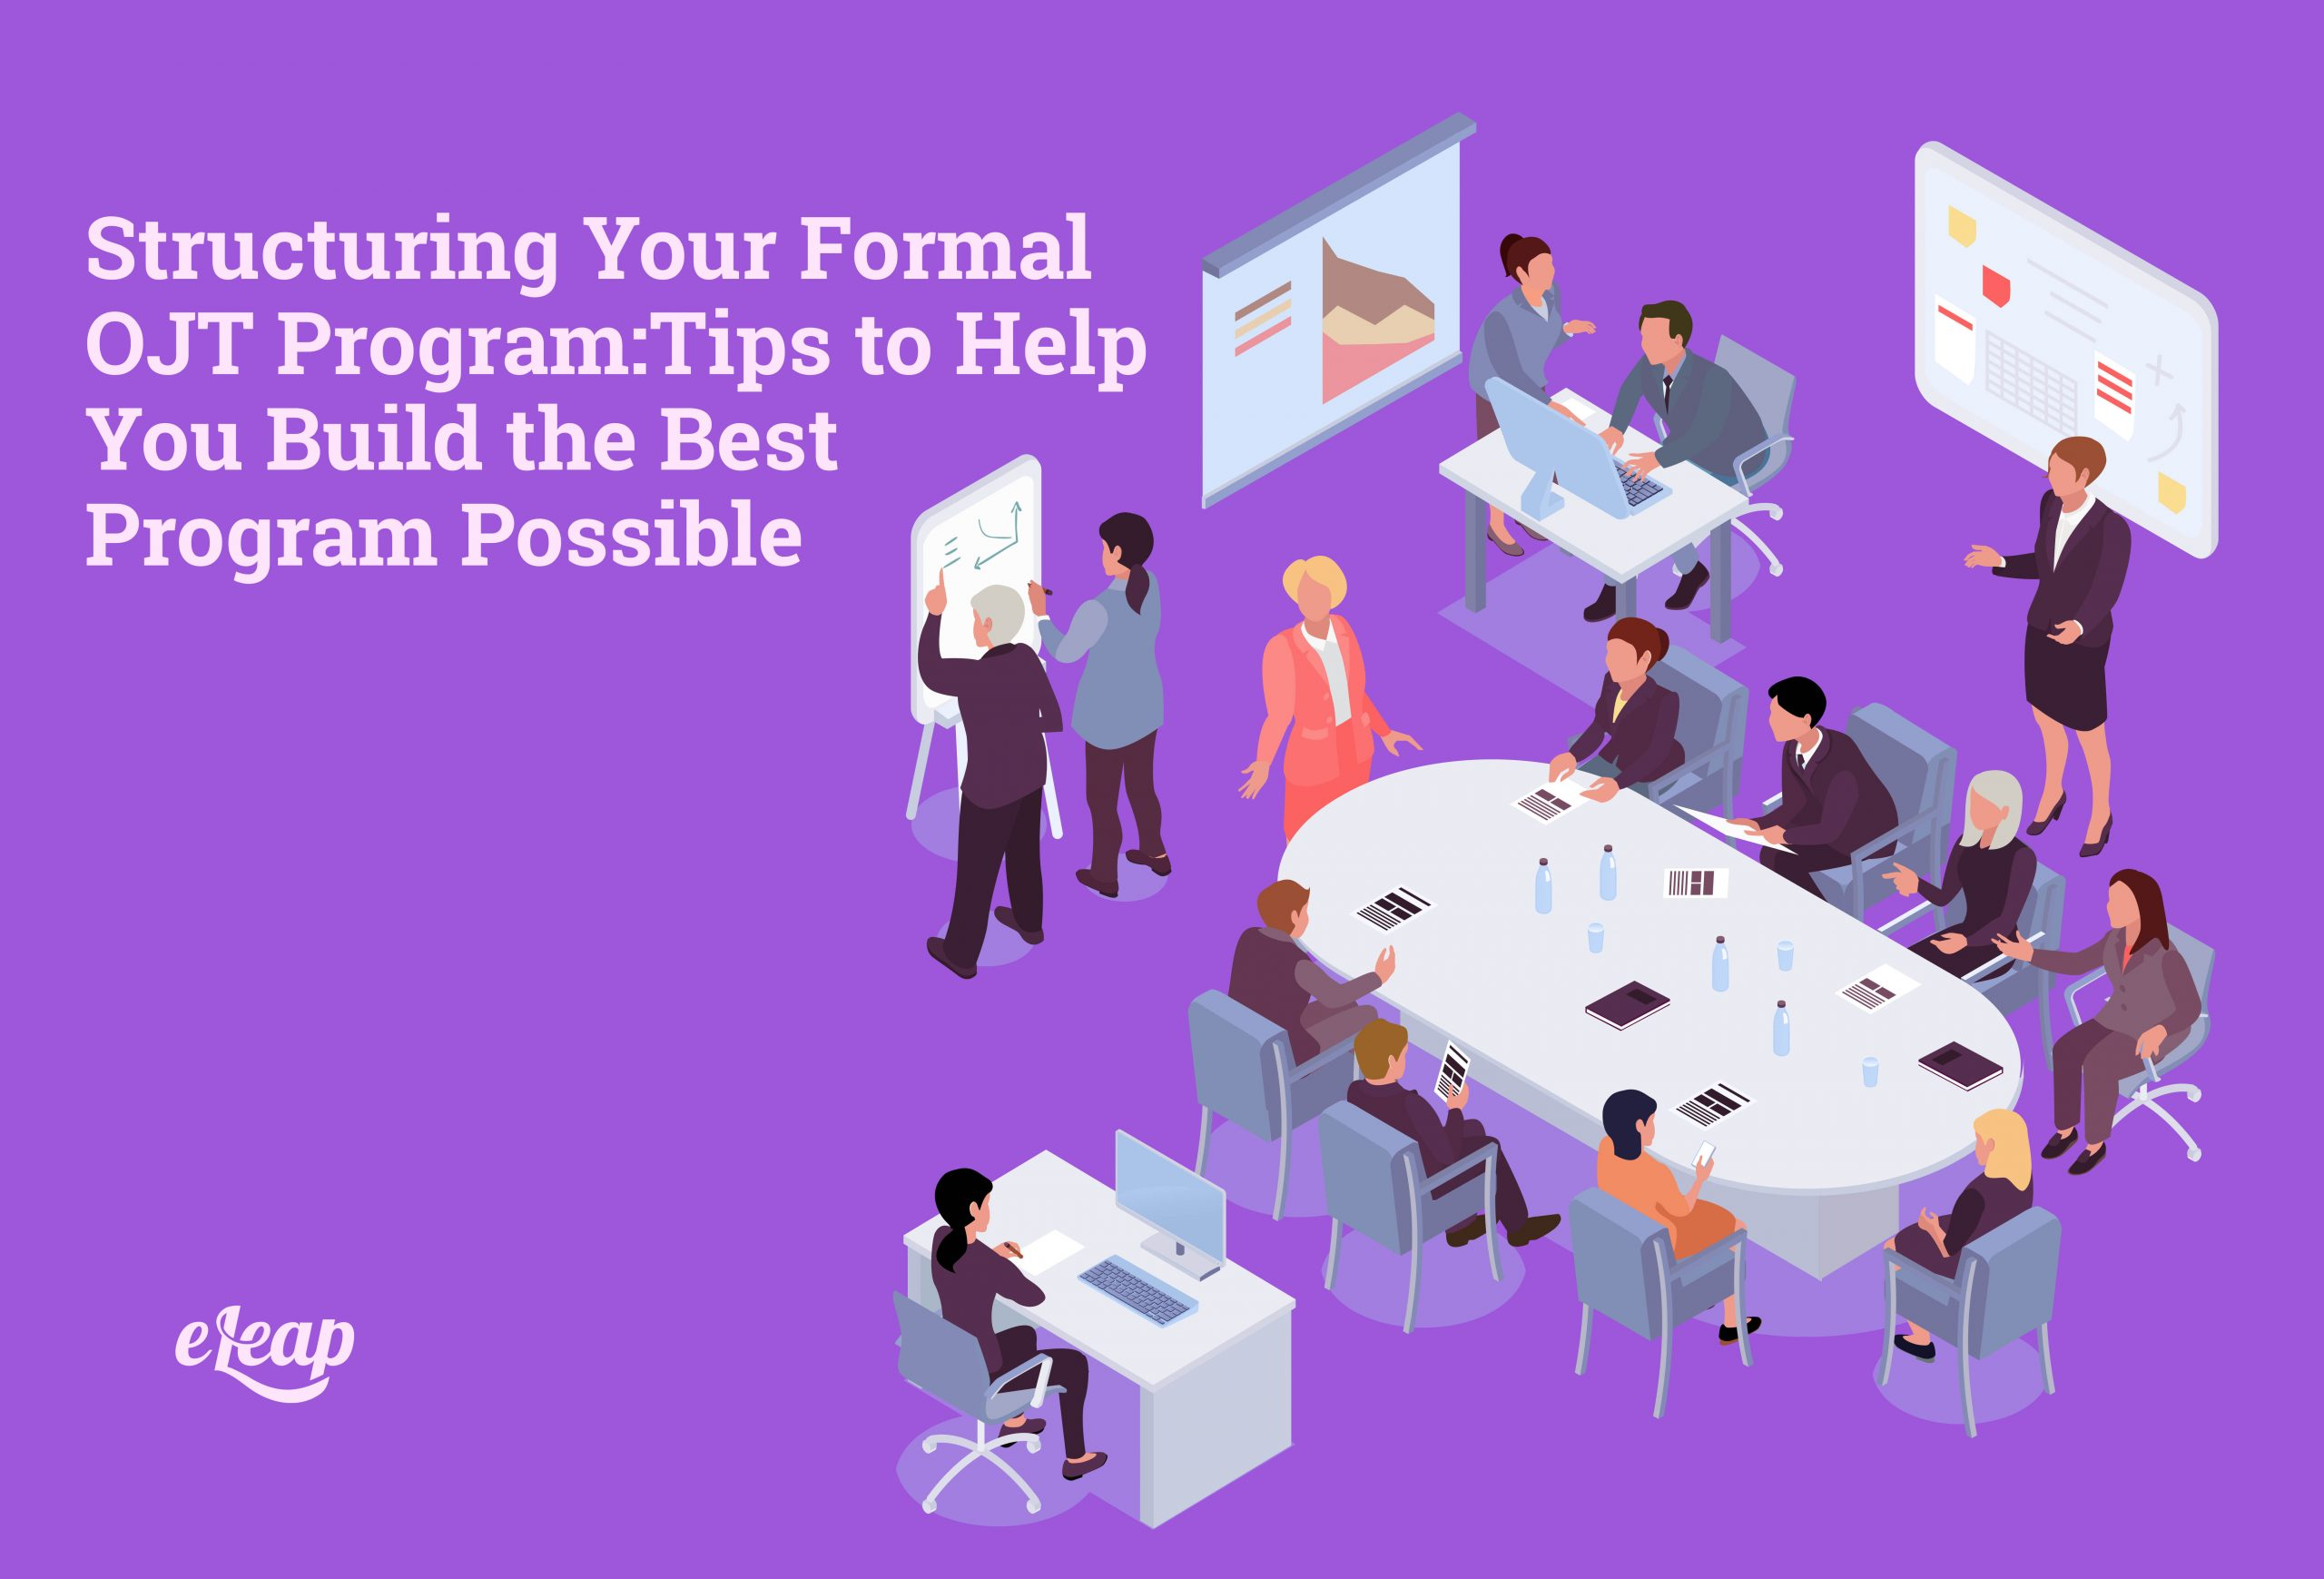 Structuring Your Formal OJT Program: Tips to Help You Build the Best Program Possible